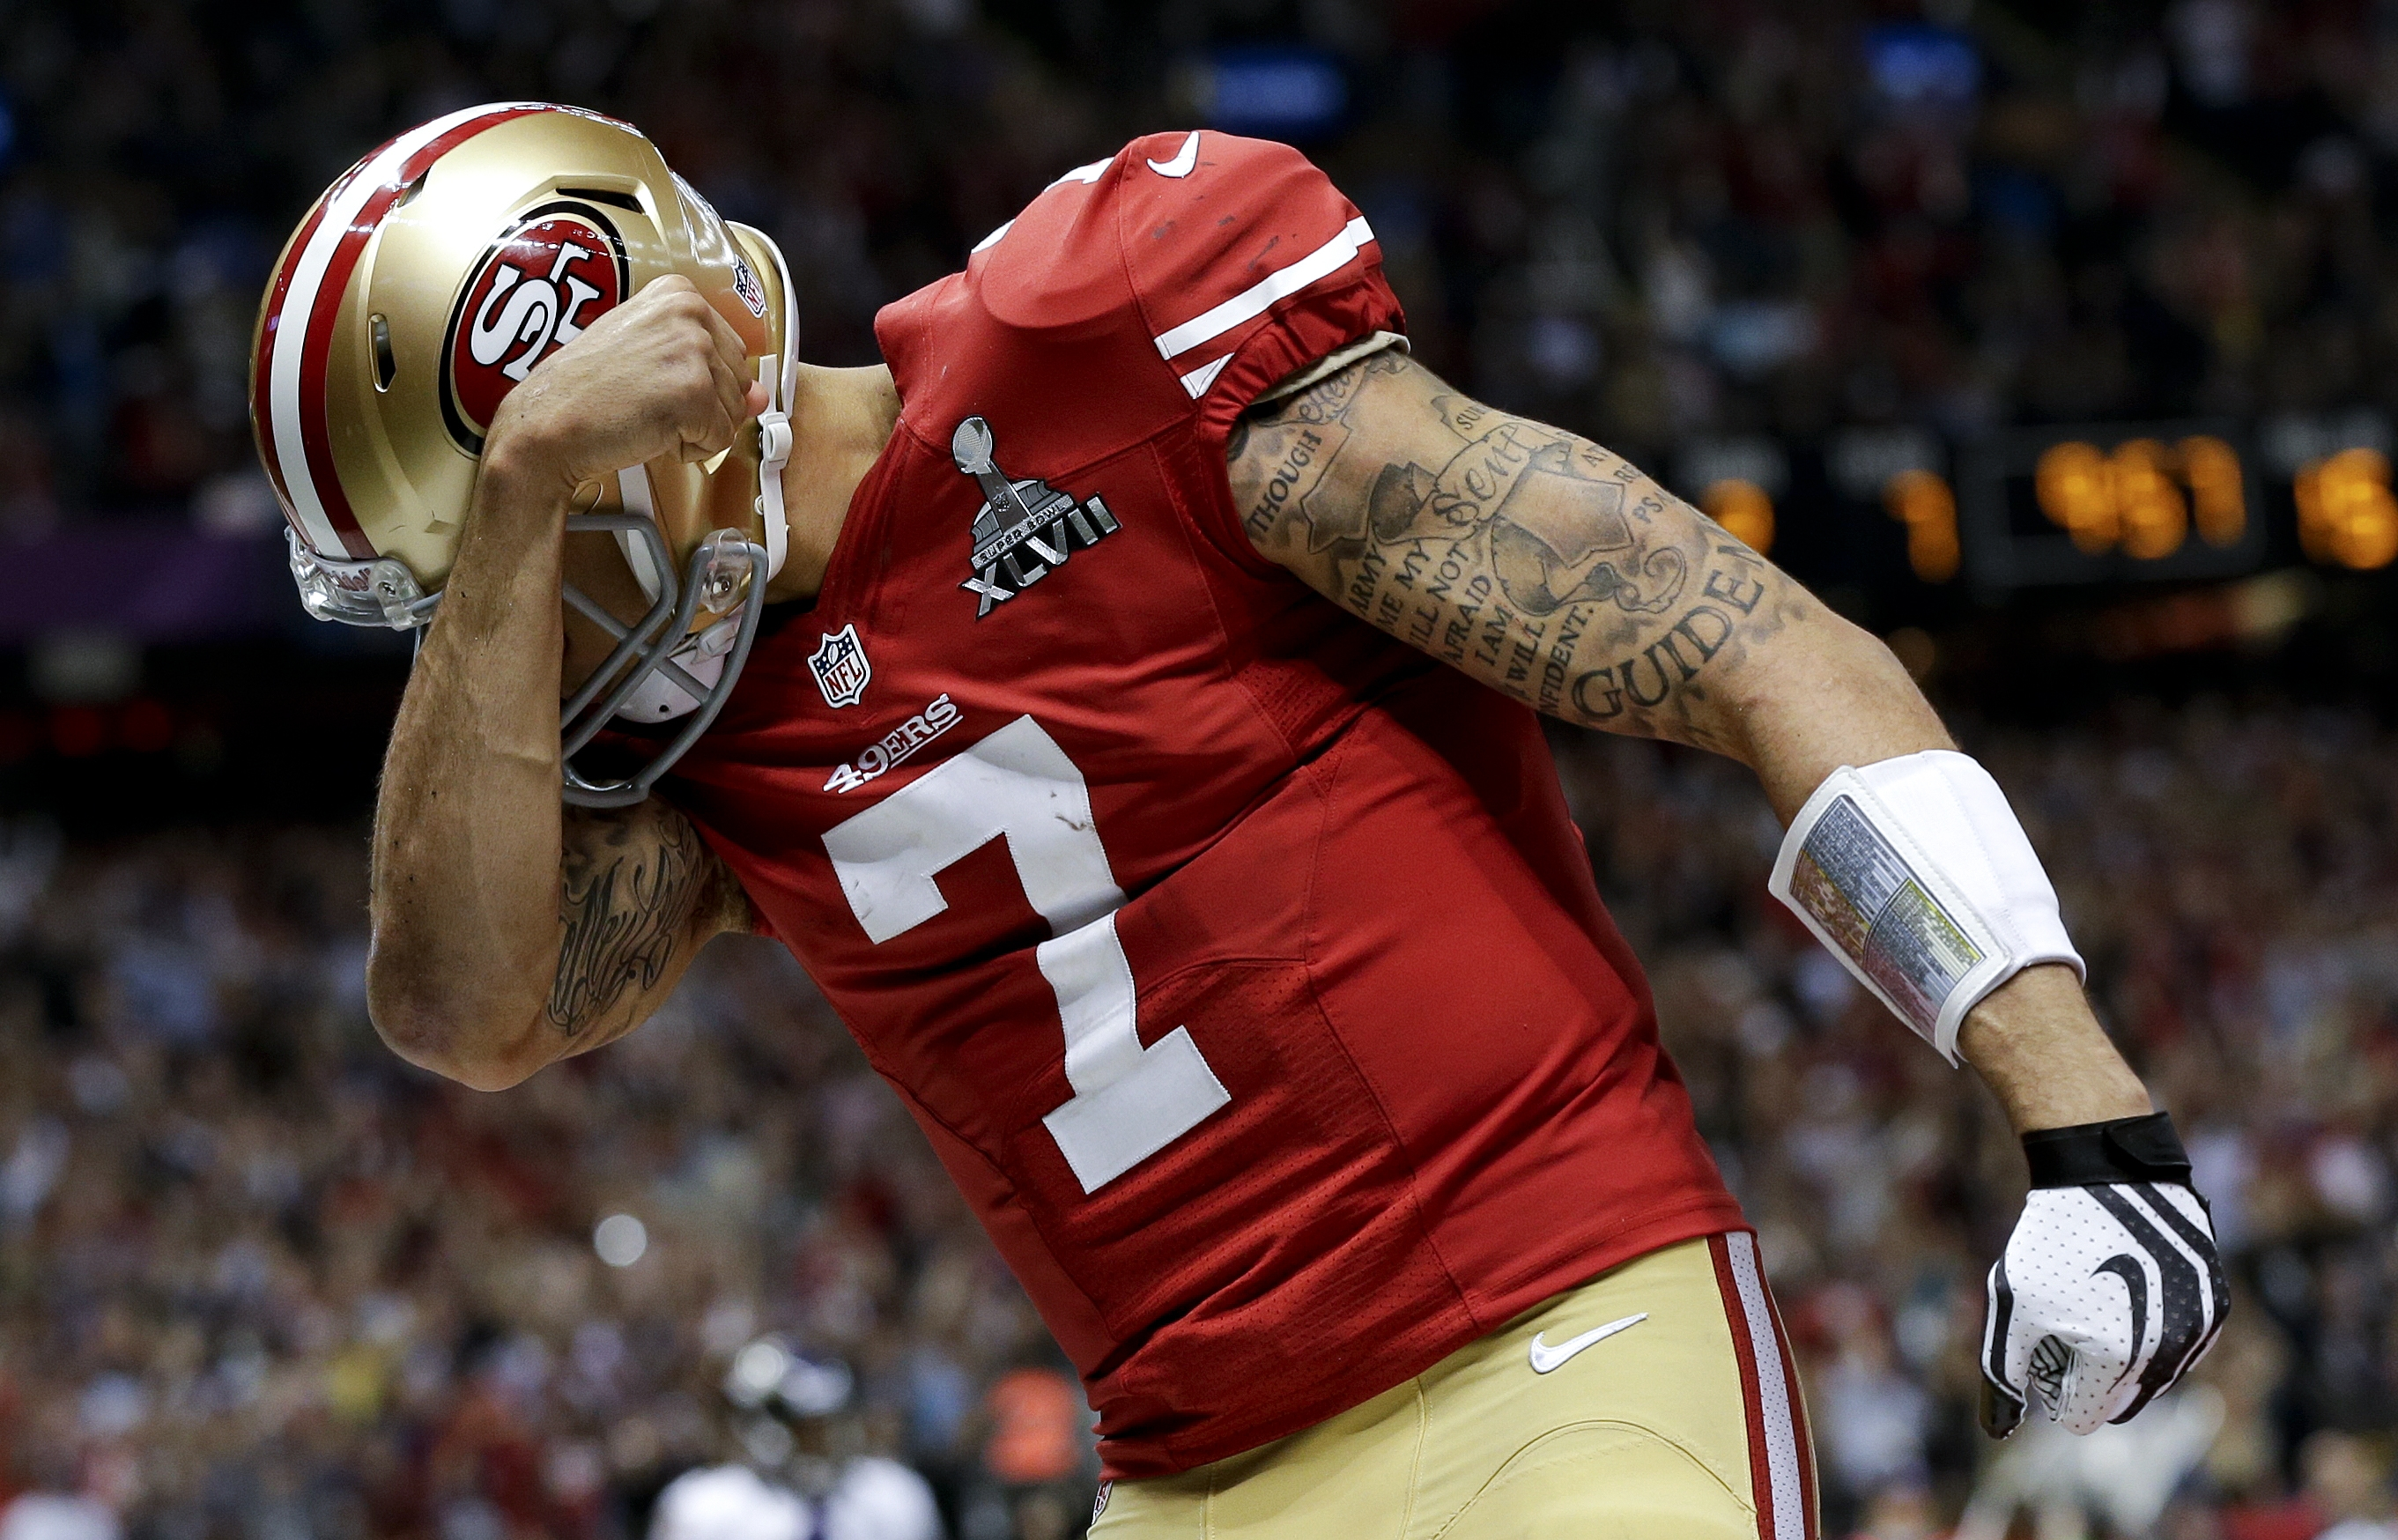 Colin Kaepernick hd wallpaper High Quality Wallpapers 2722x1748